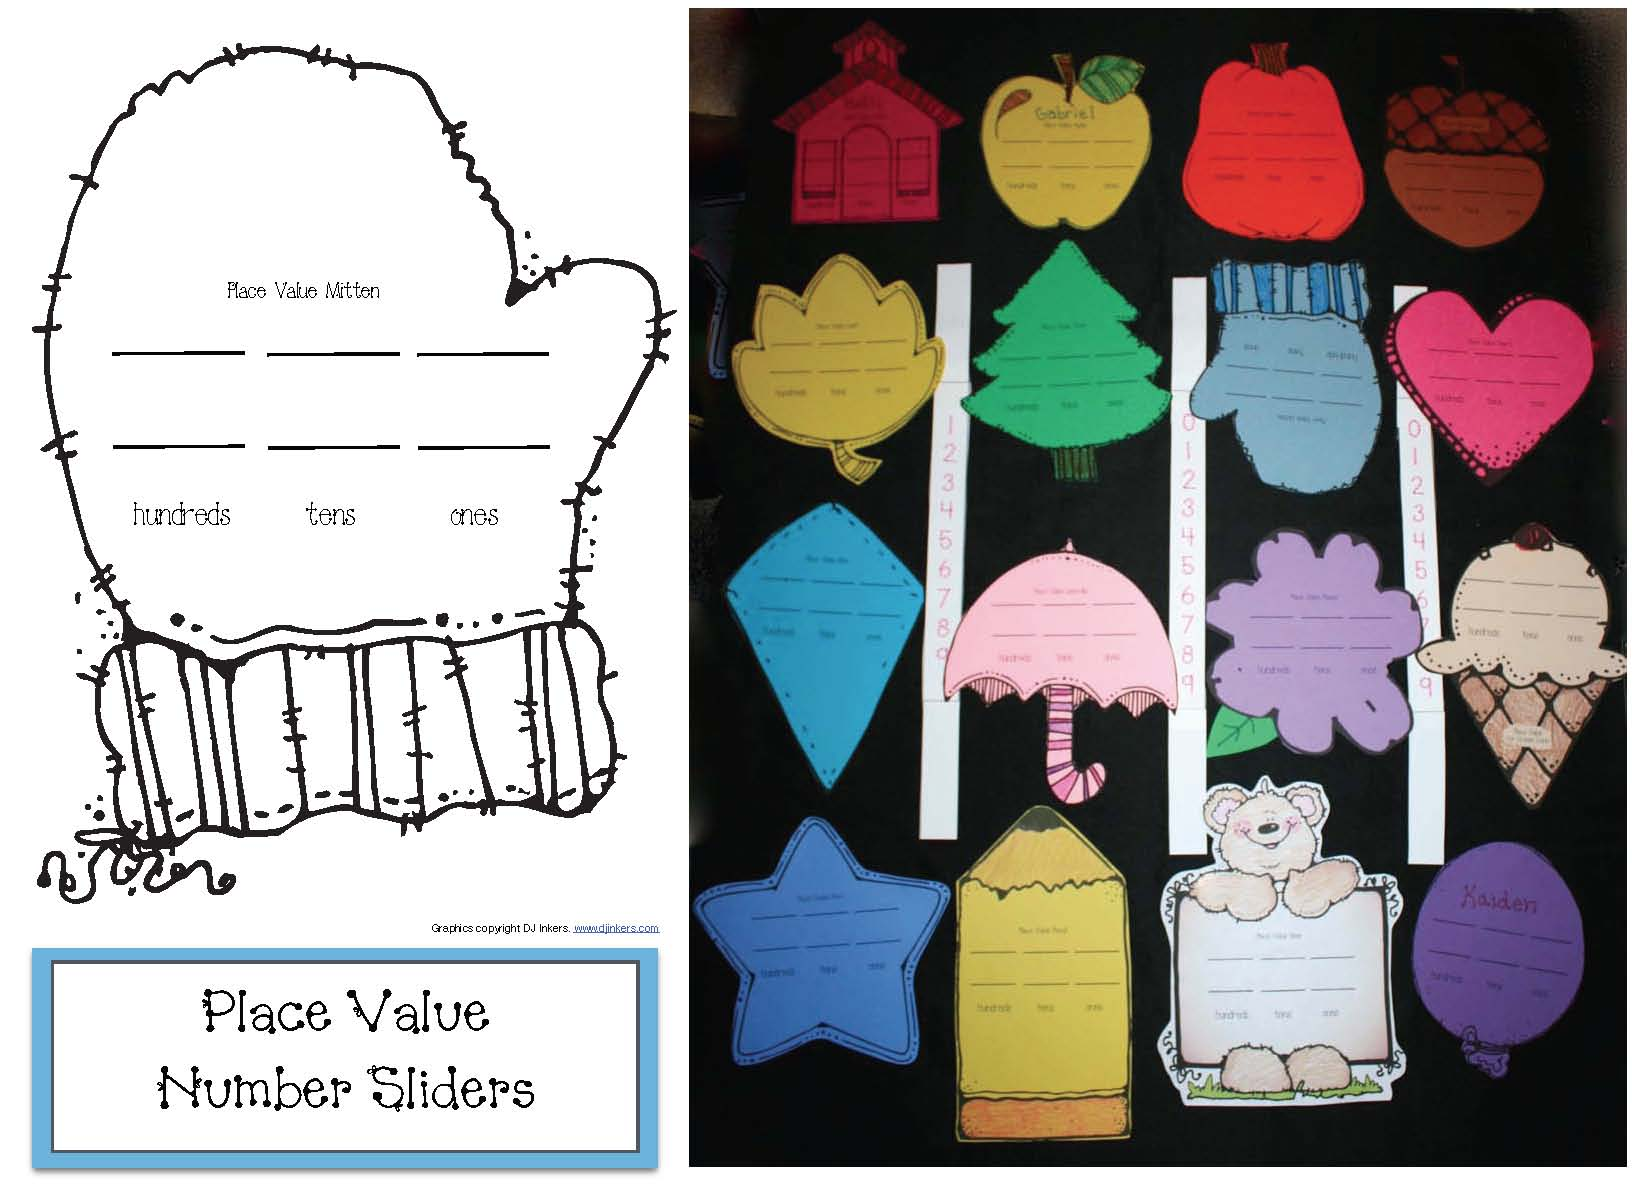 mitten activities, place value activities,mitten number cards, 10 frames, 10 frame templates, mitten ten frames, ten frames, mitten 10 frames, winter word wall, winter games, time games, math games, mitten clocks, digital time activities, time to the hour activities, analog time activities, dime to the half hour activities, graphic organizers, mitten graphic organizers, skip counting by 2s activities, mitten math,